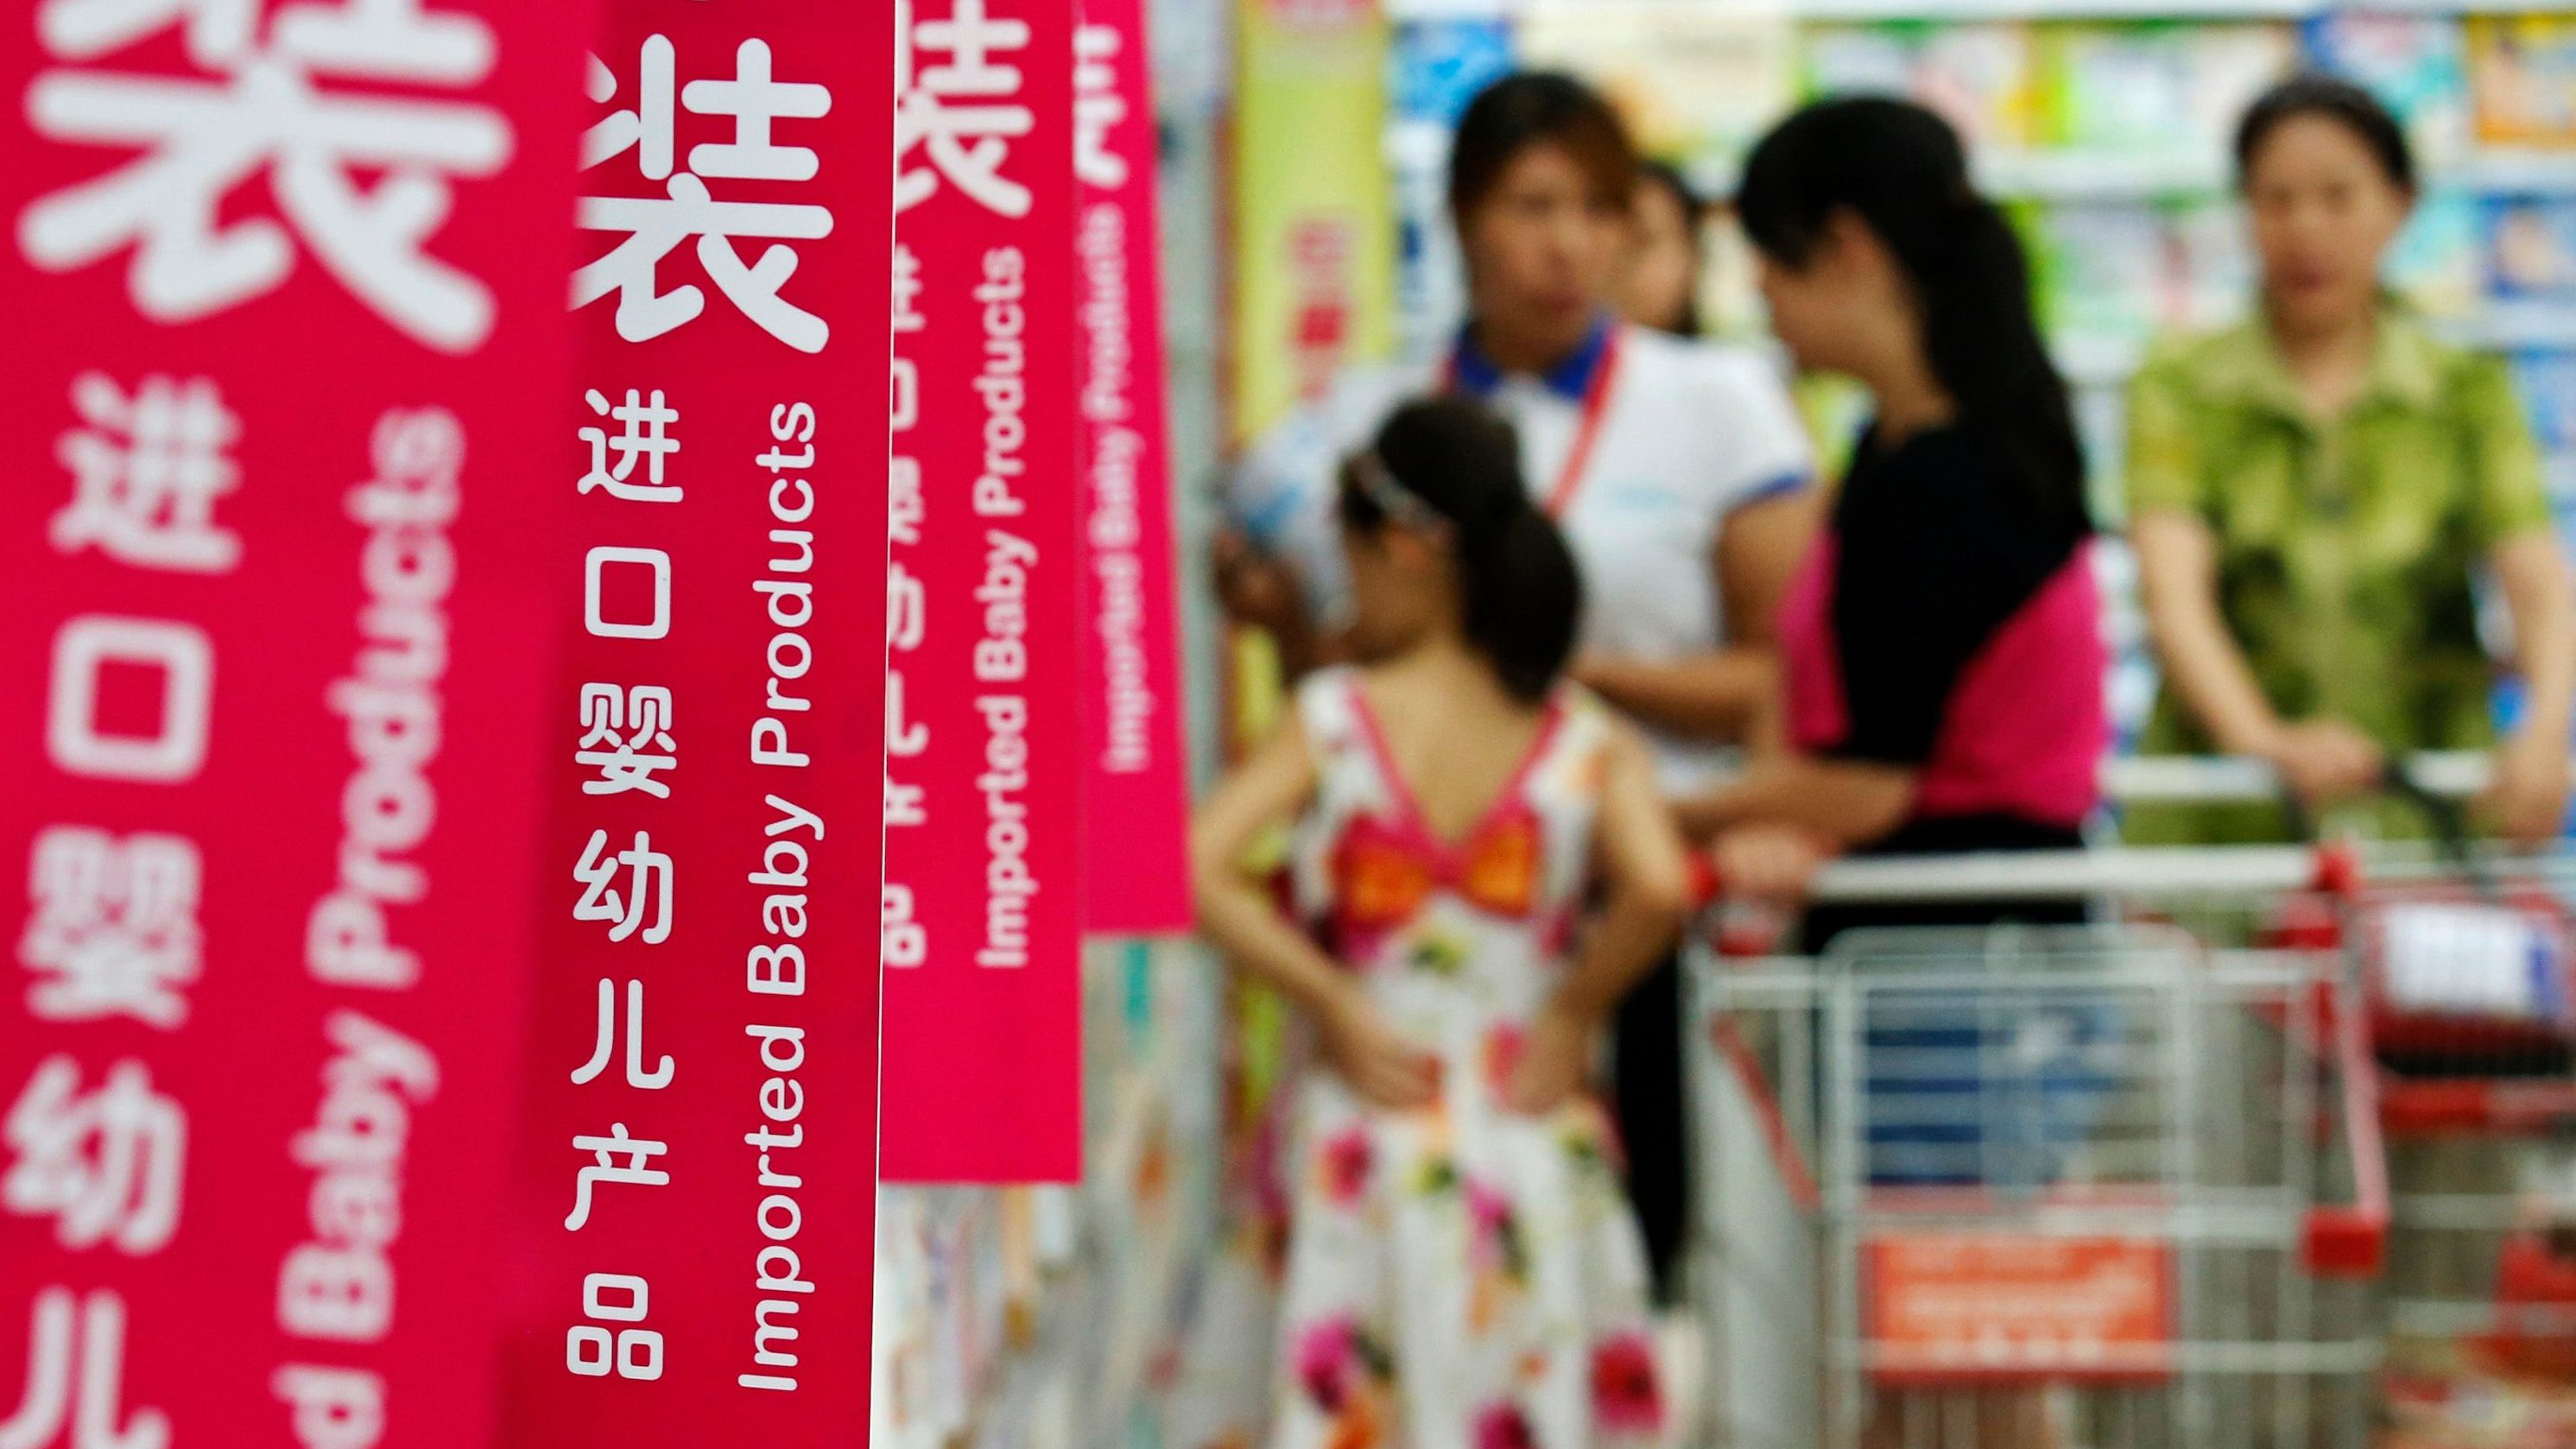 This 25-year-old law could be why China has a debt problem photo